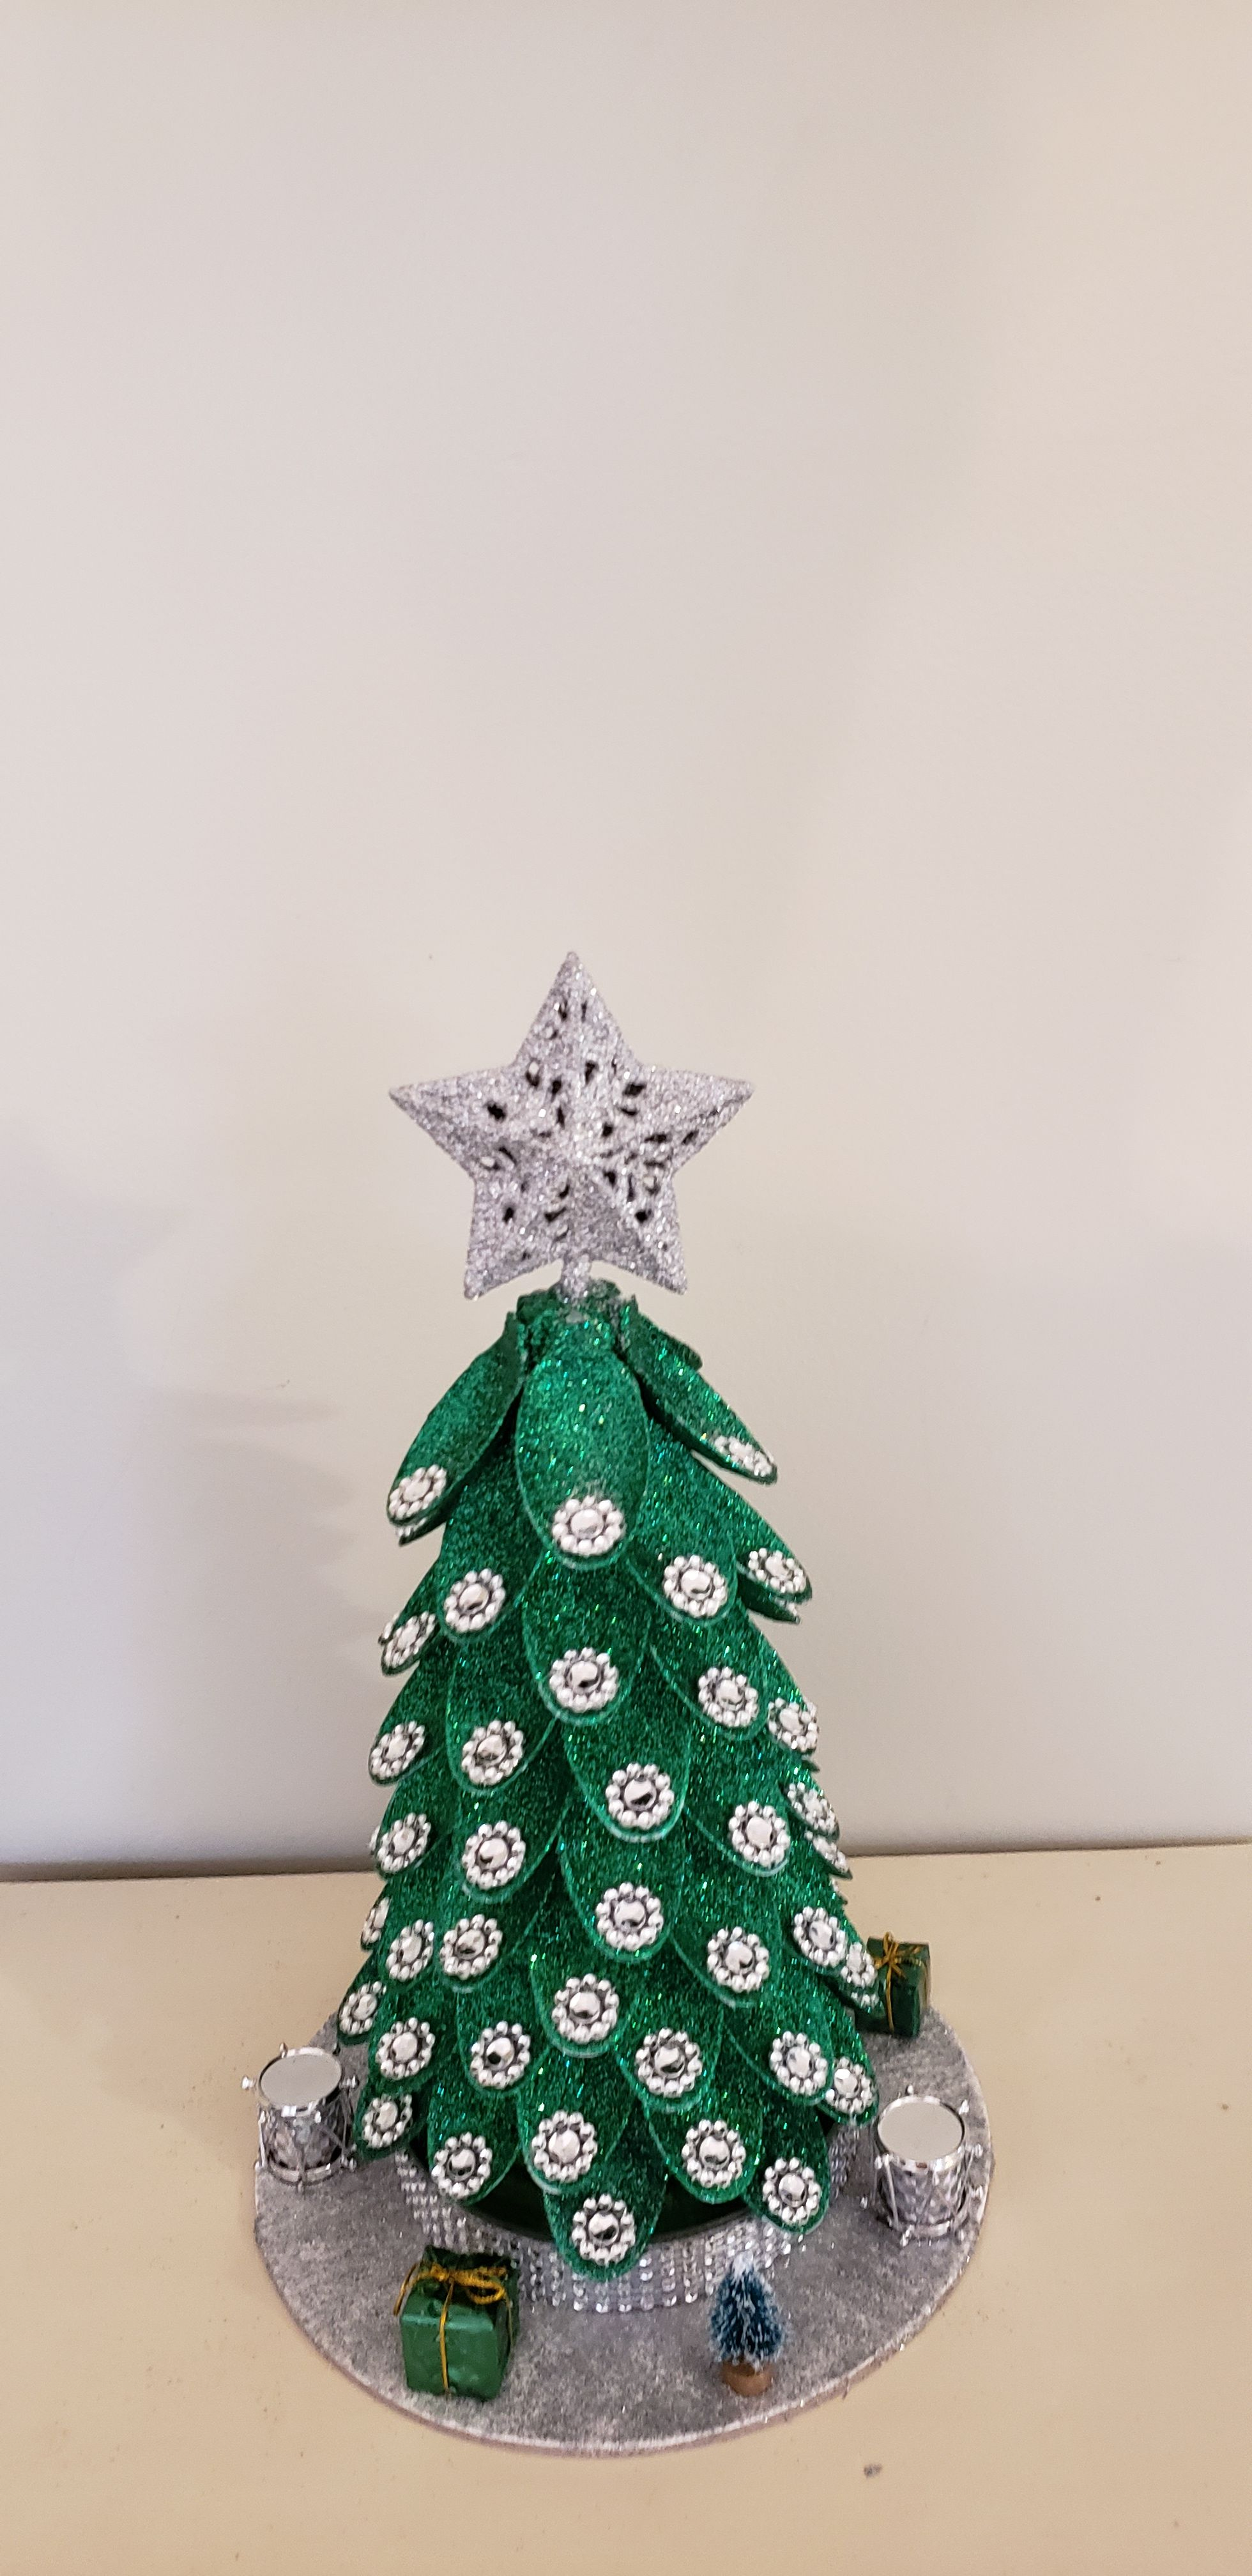 Green and Silver Christmas Tree #sunflowerchristmastree